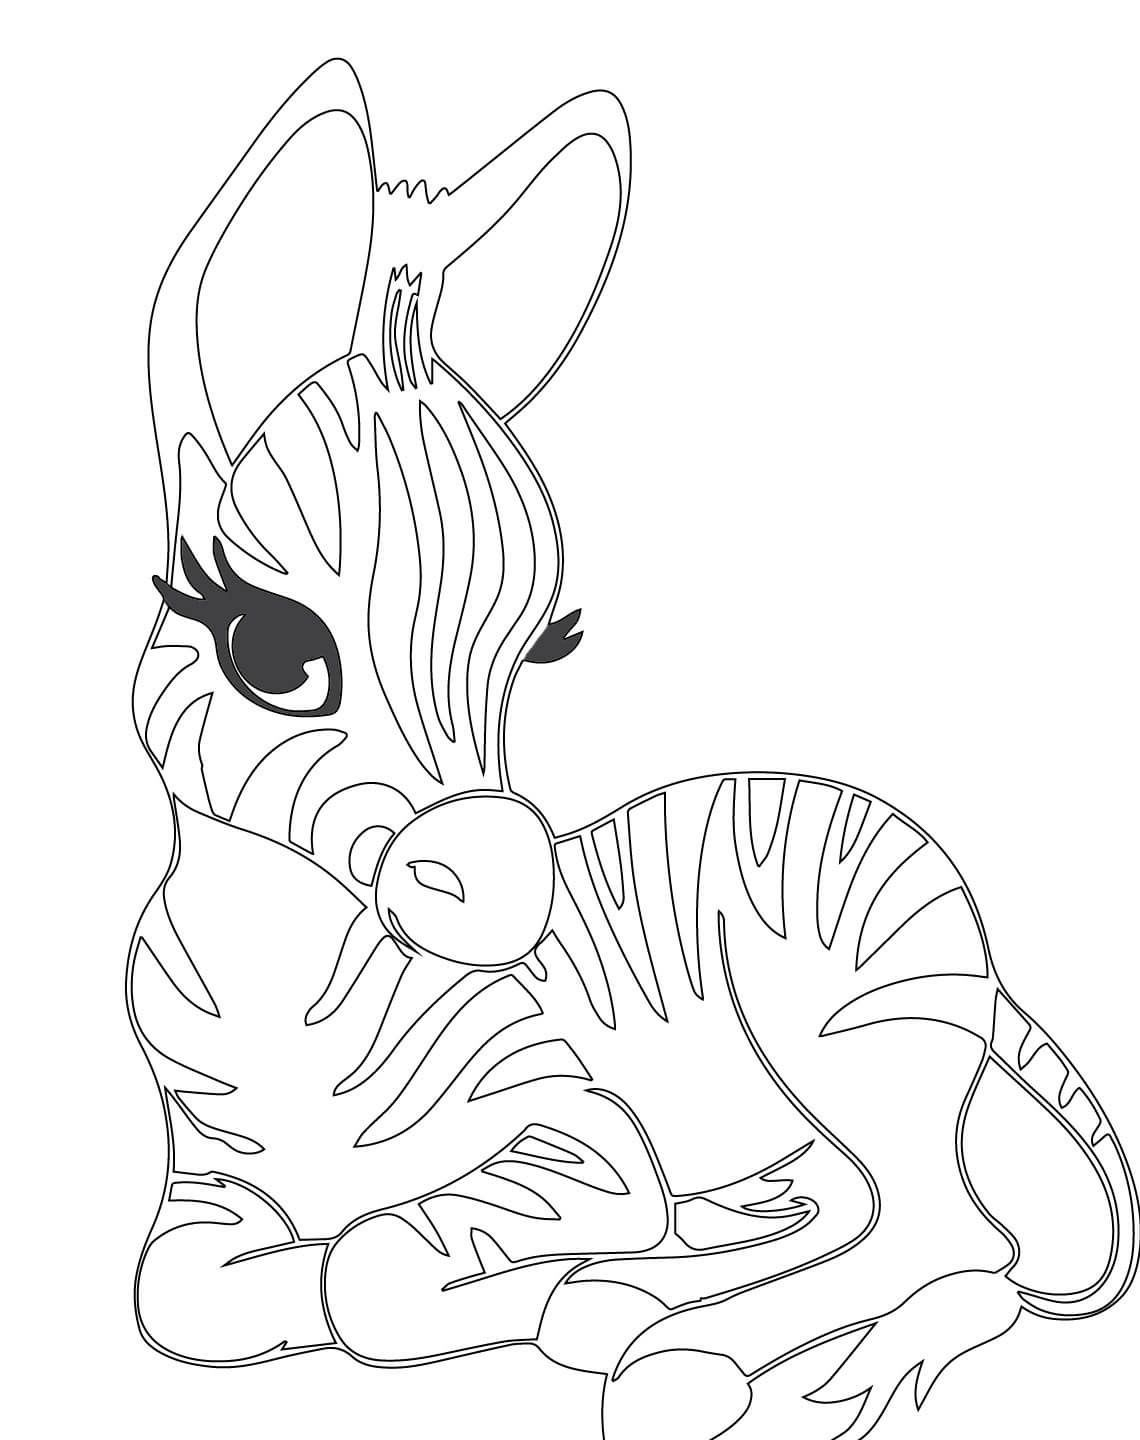 Coloring pages zebra - Coloring Pages Zebra 41